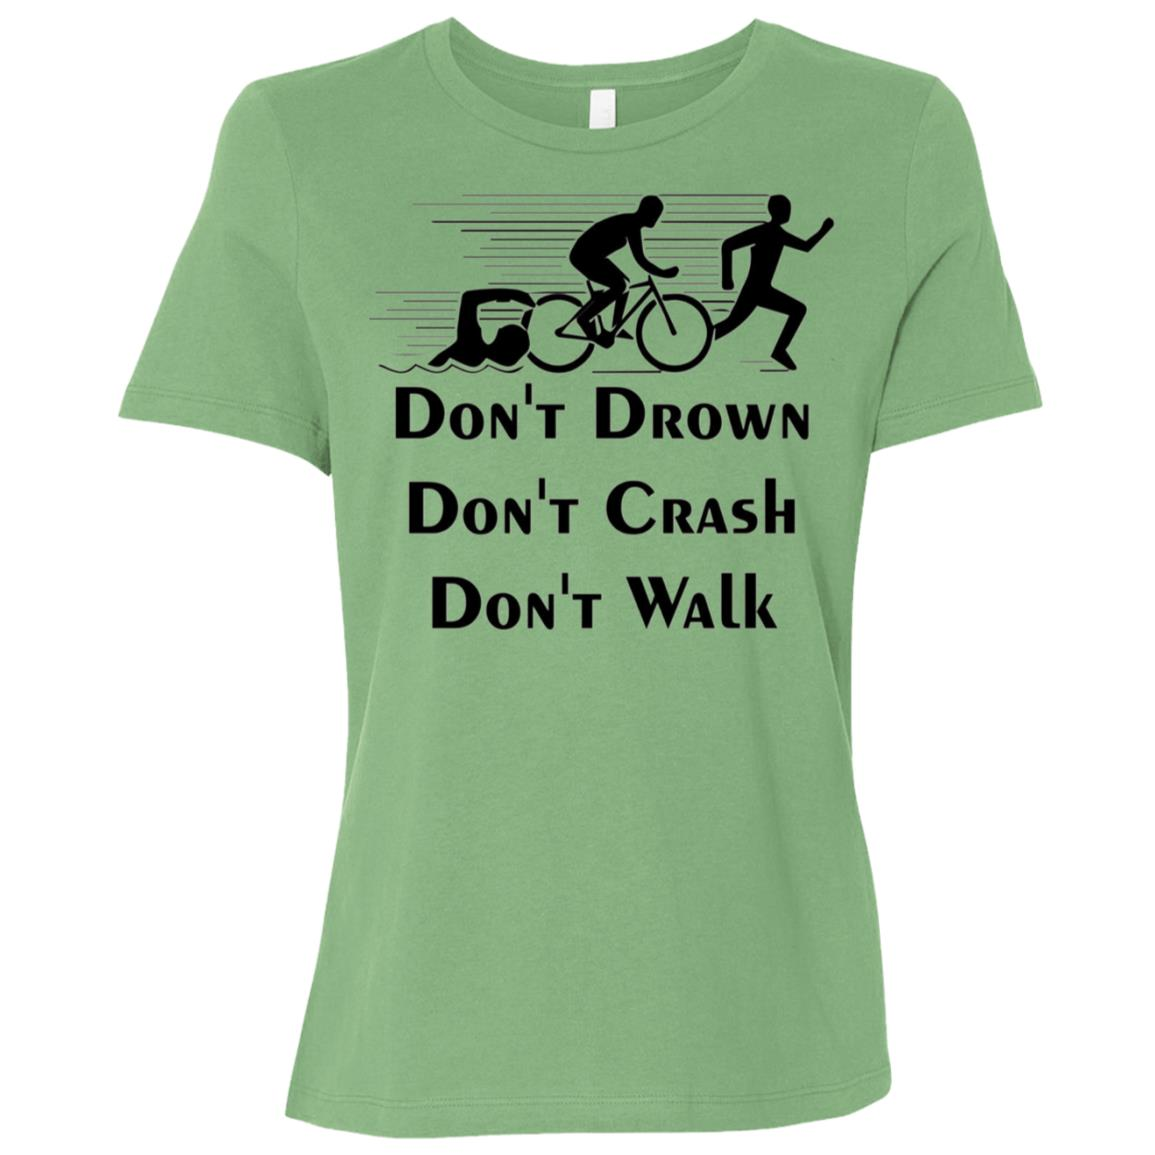 Don't Drown Don't Crash Don't Walk Women Short Sleeve T-Shirt